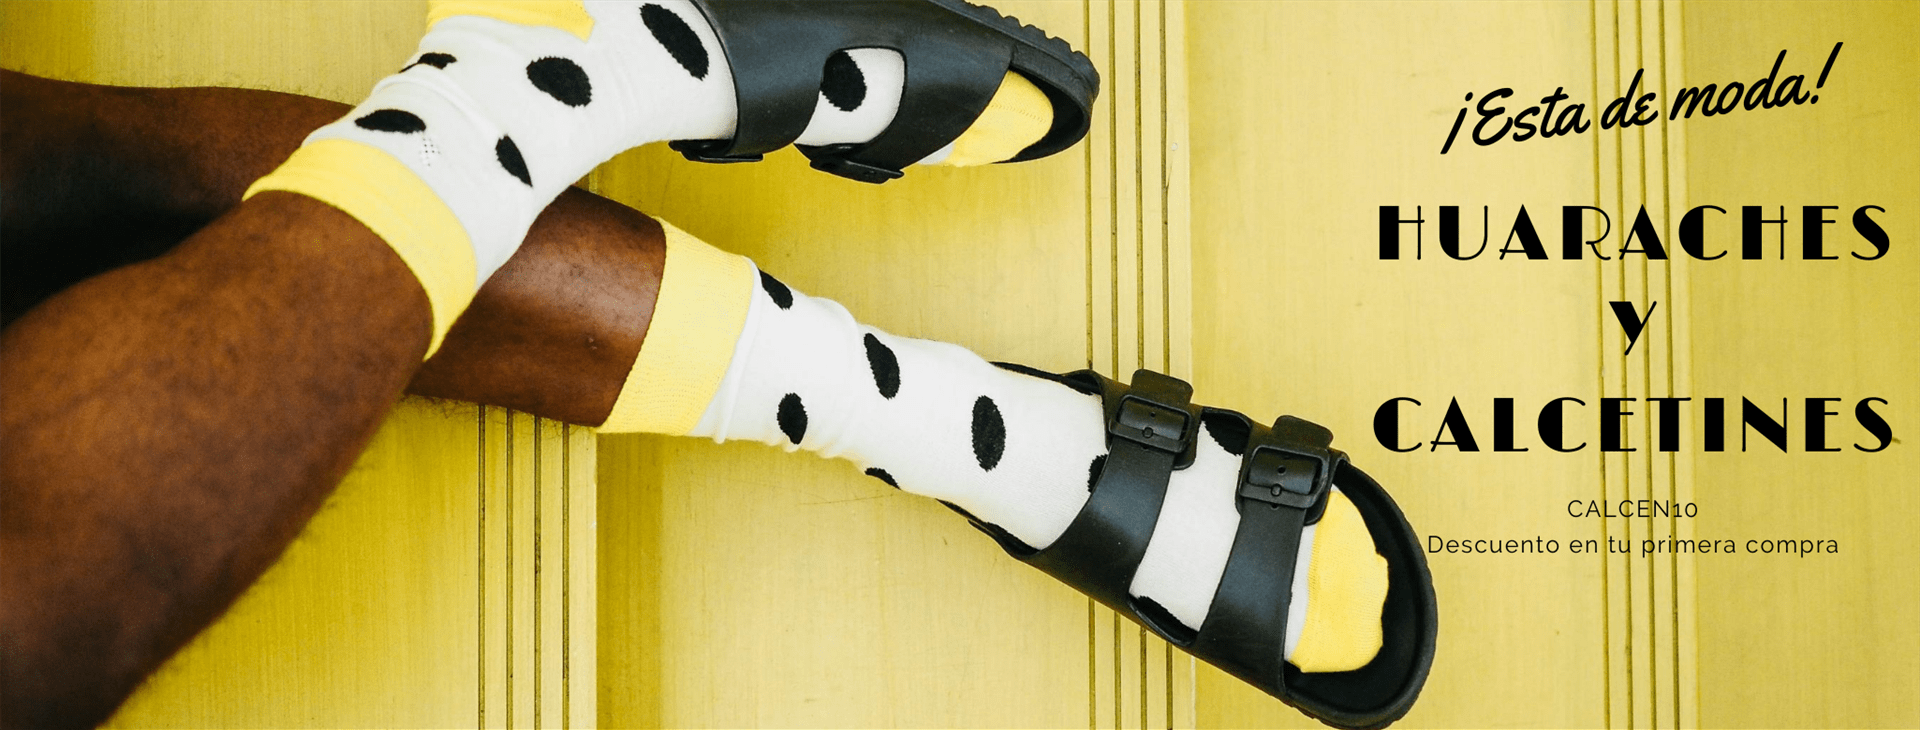 CALCENTICO OUTLET SOCKS – Huaraches y calcetines